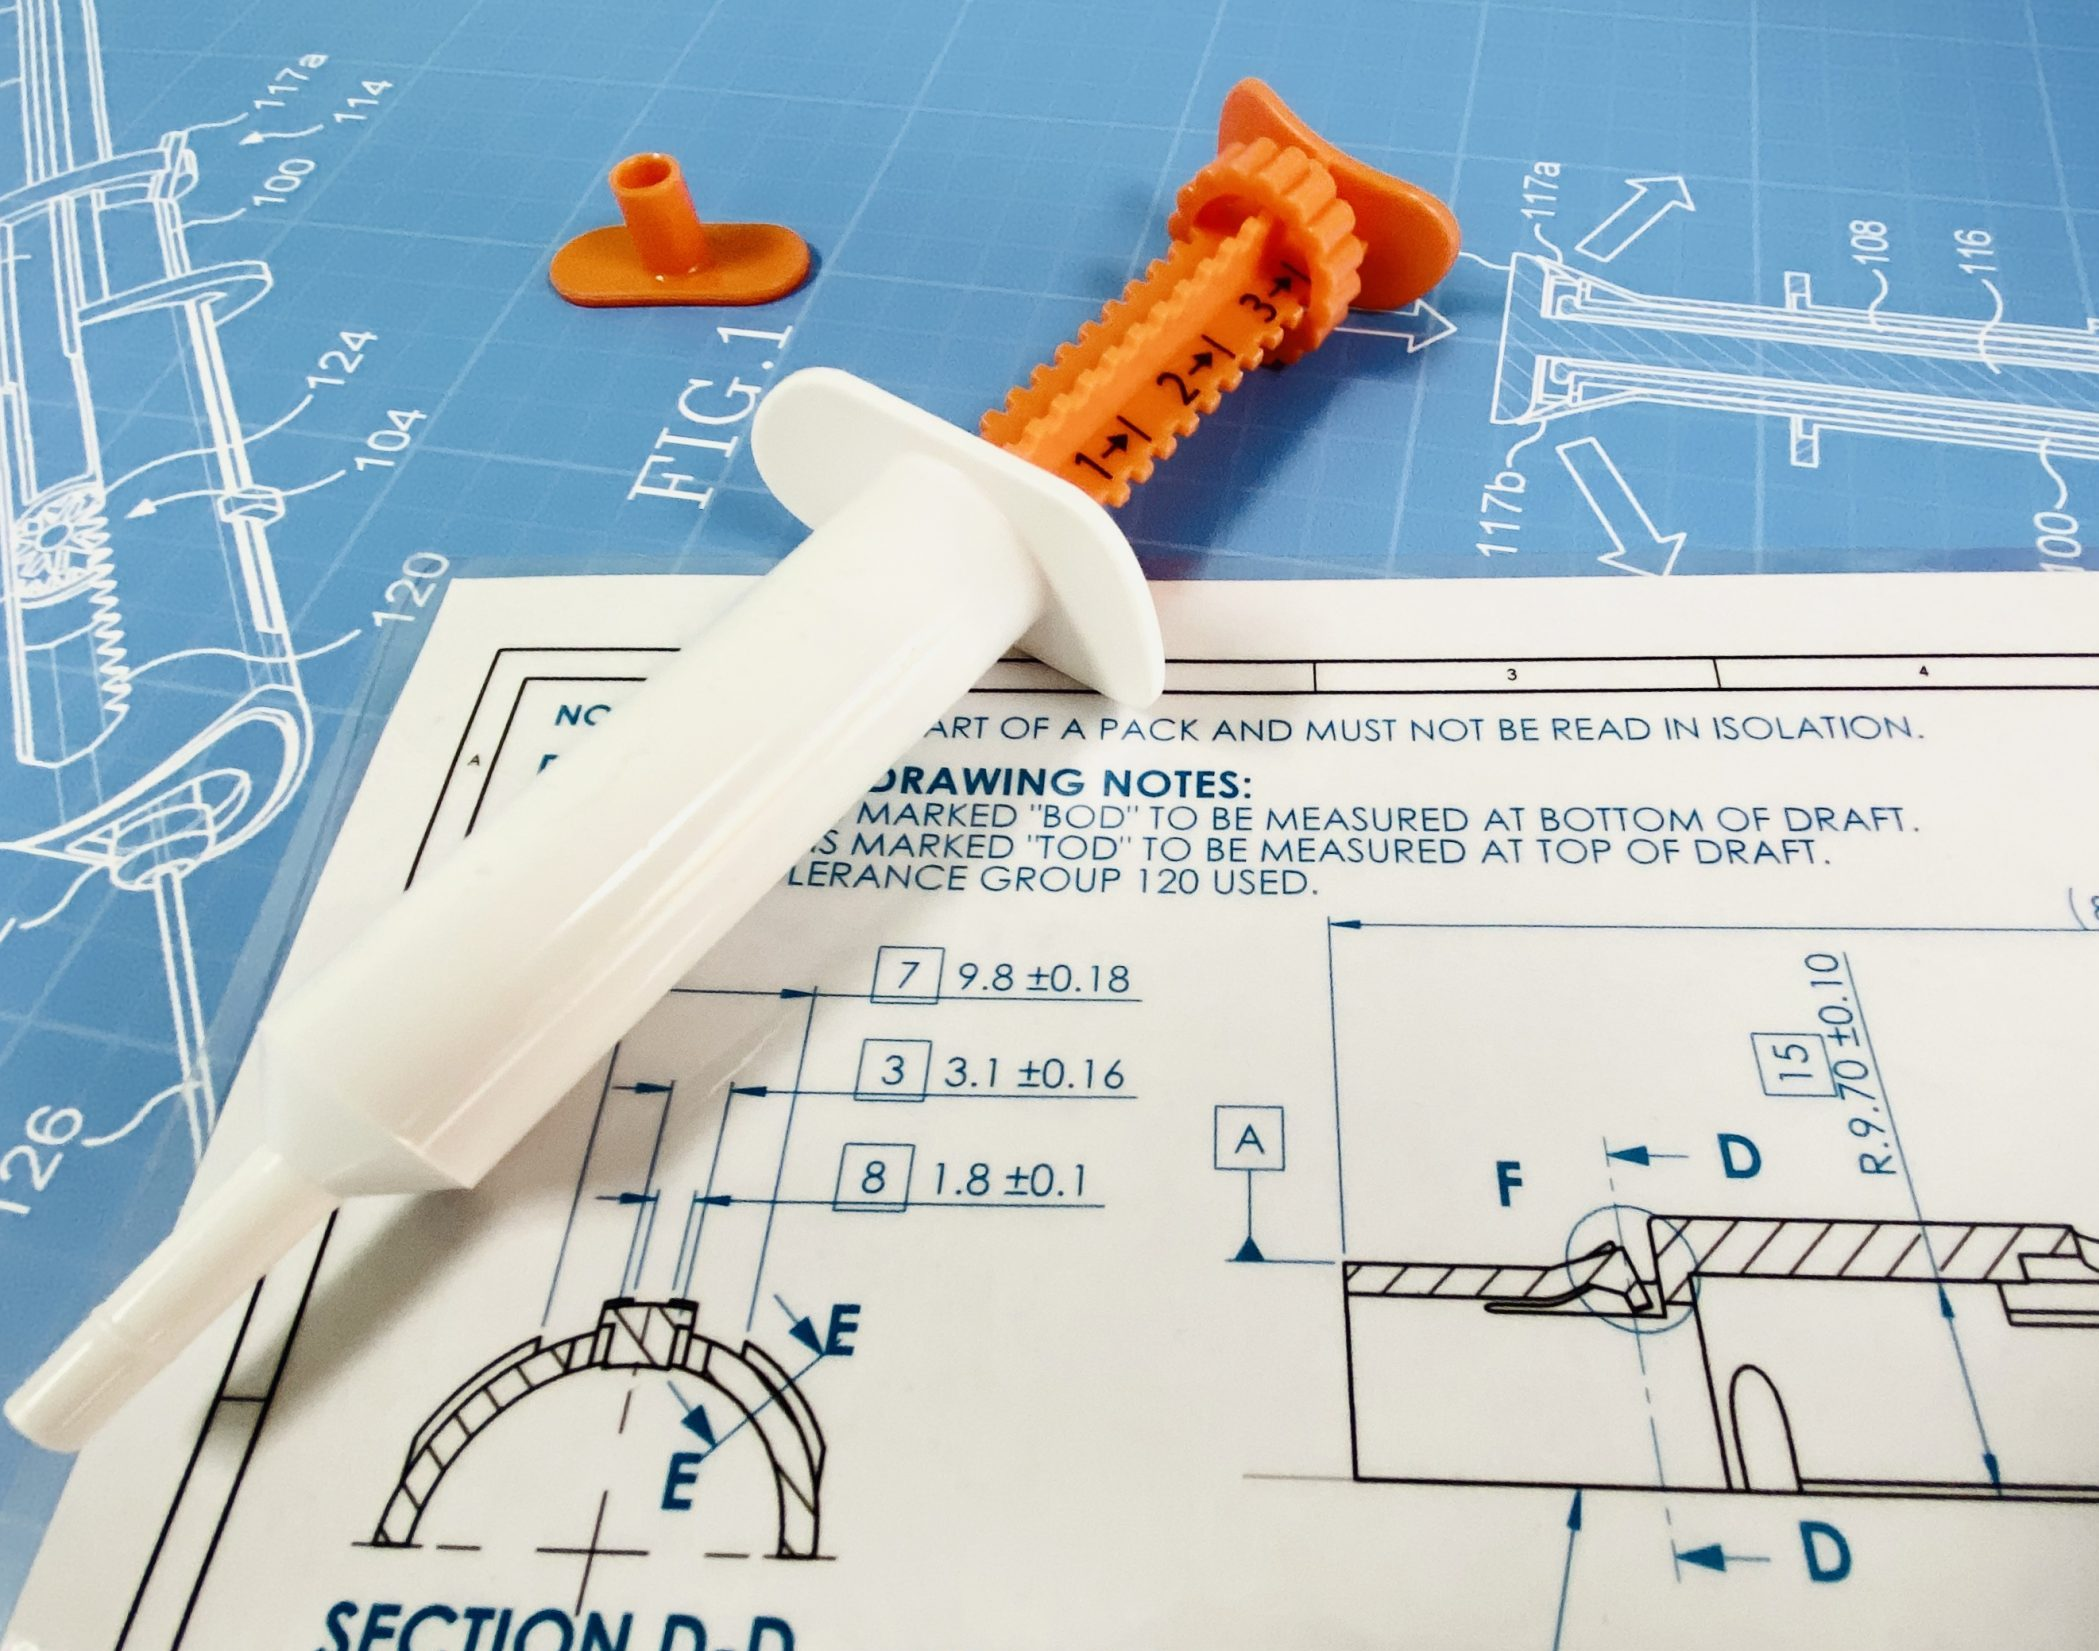 Mechanical design and engineering drawing on a patent with syringe